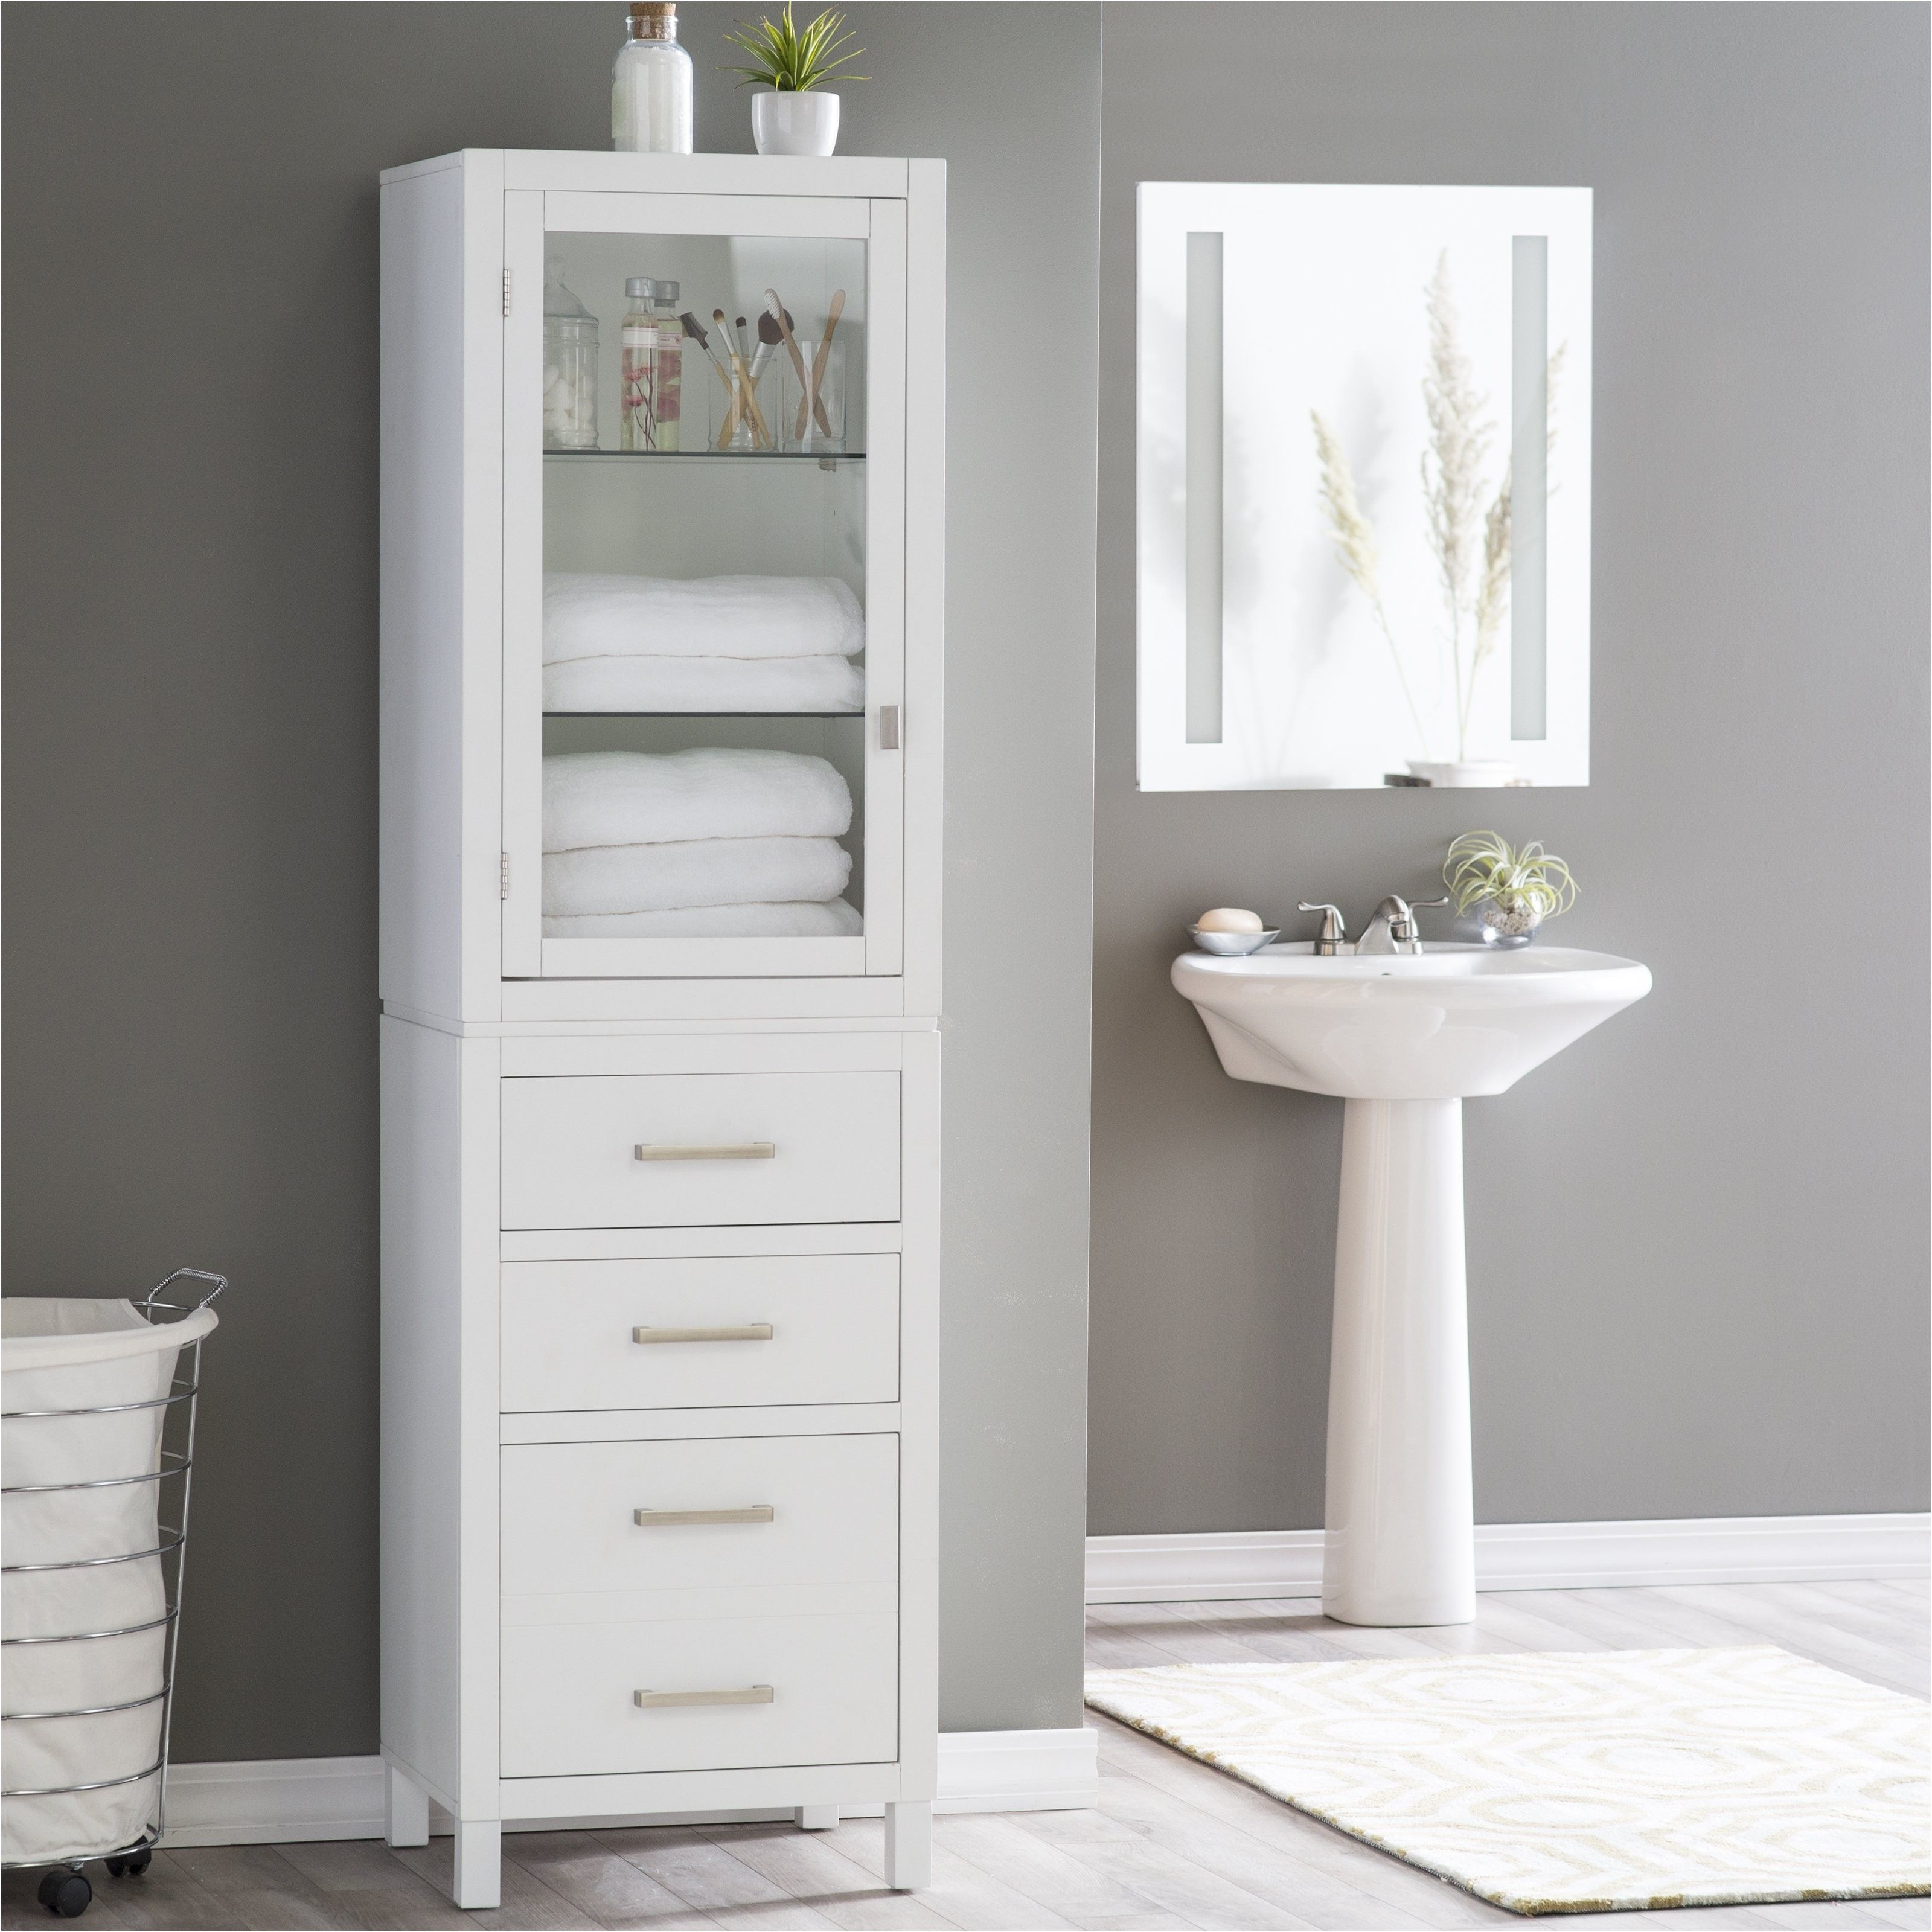 Bathroom Linen Cabinets On Hayneedle Storage Units From Cabinet Tower